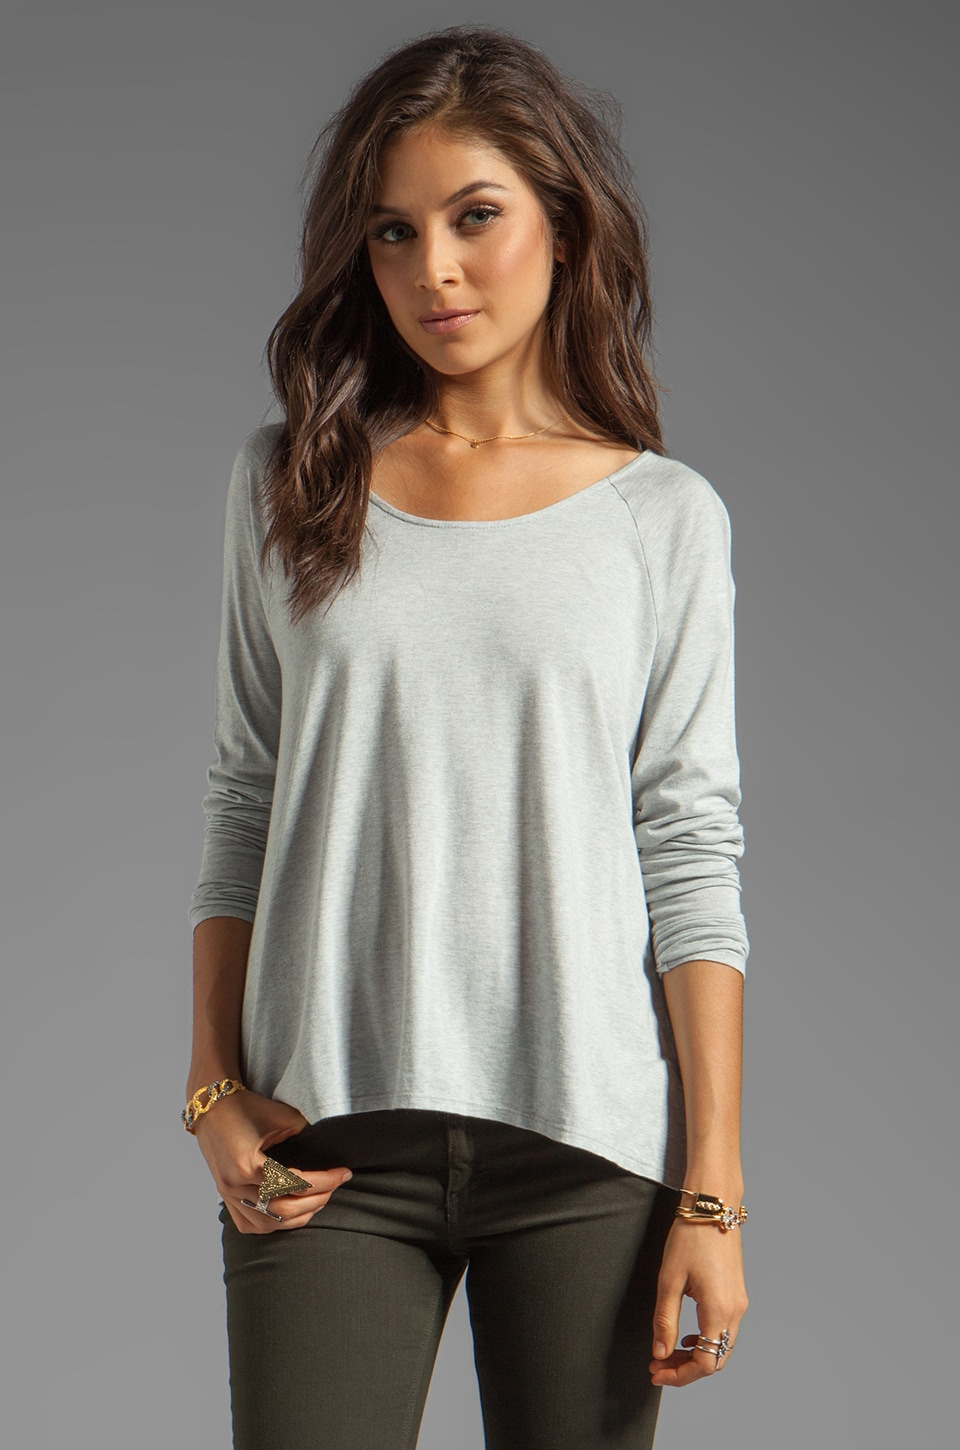 Soft Joie Hildago Top in Heather Grey